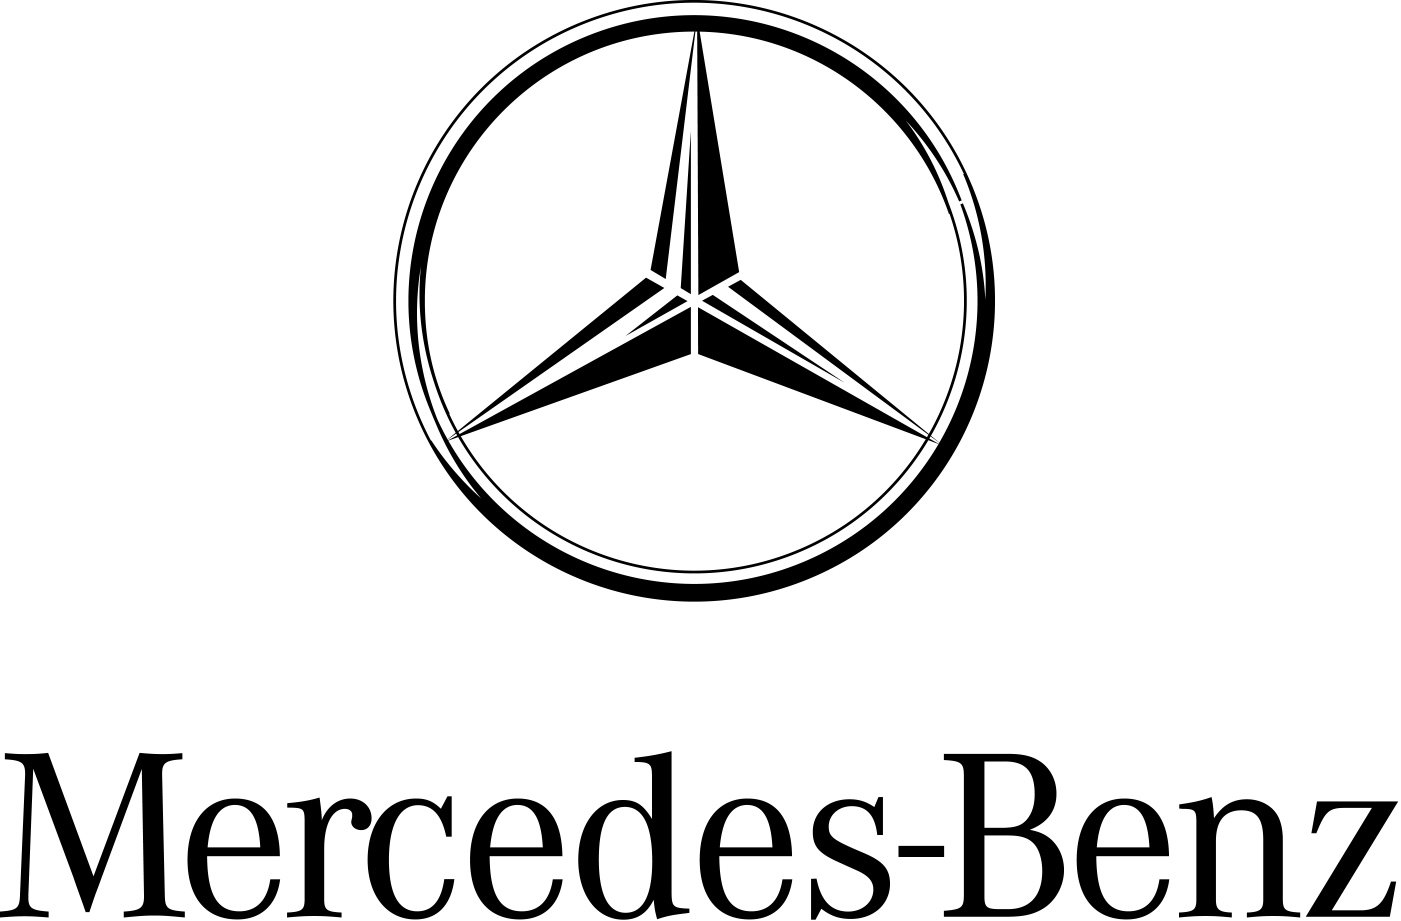 Filemercedes benz logo 11g wikimedia commons filemercedes benz logo 11g biocorpaavc Image collections